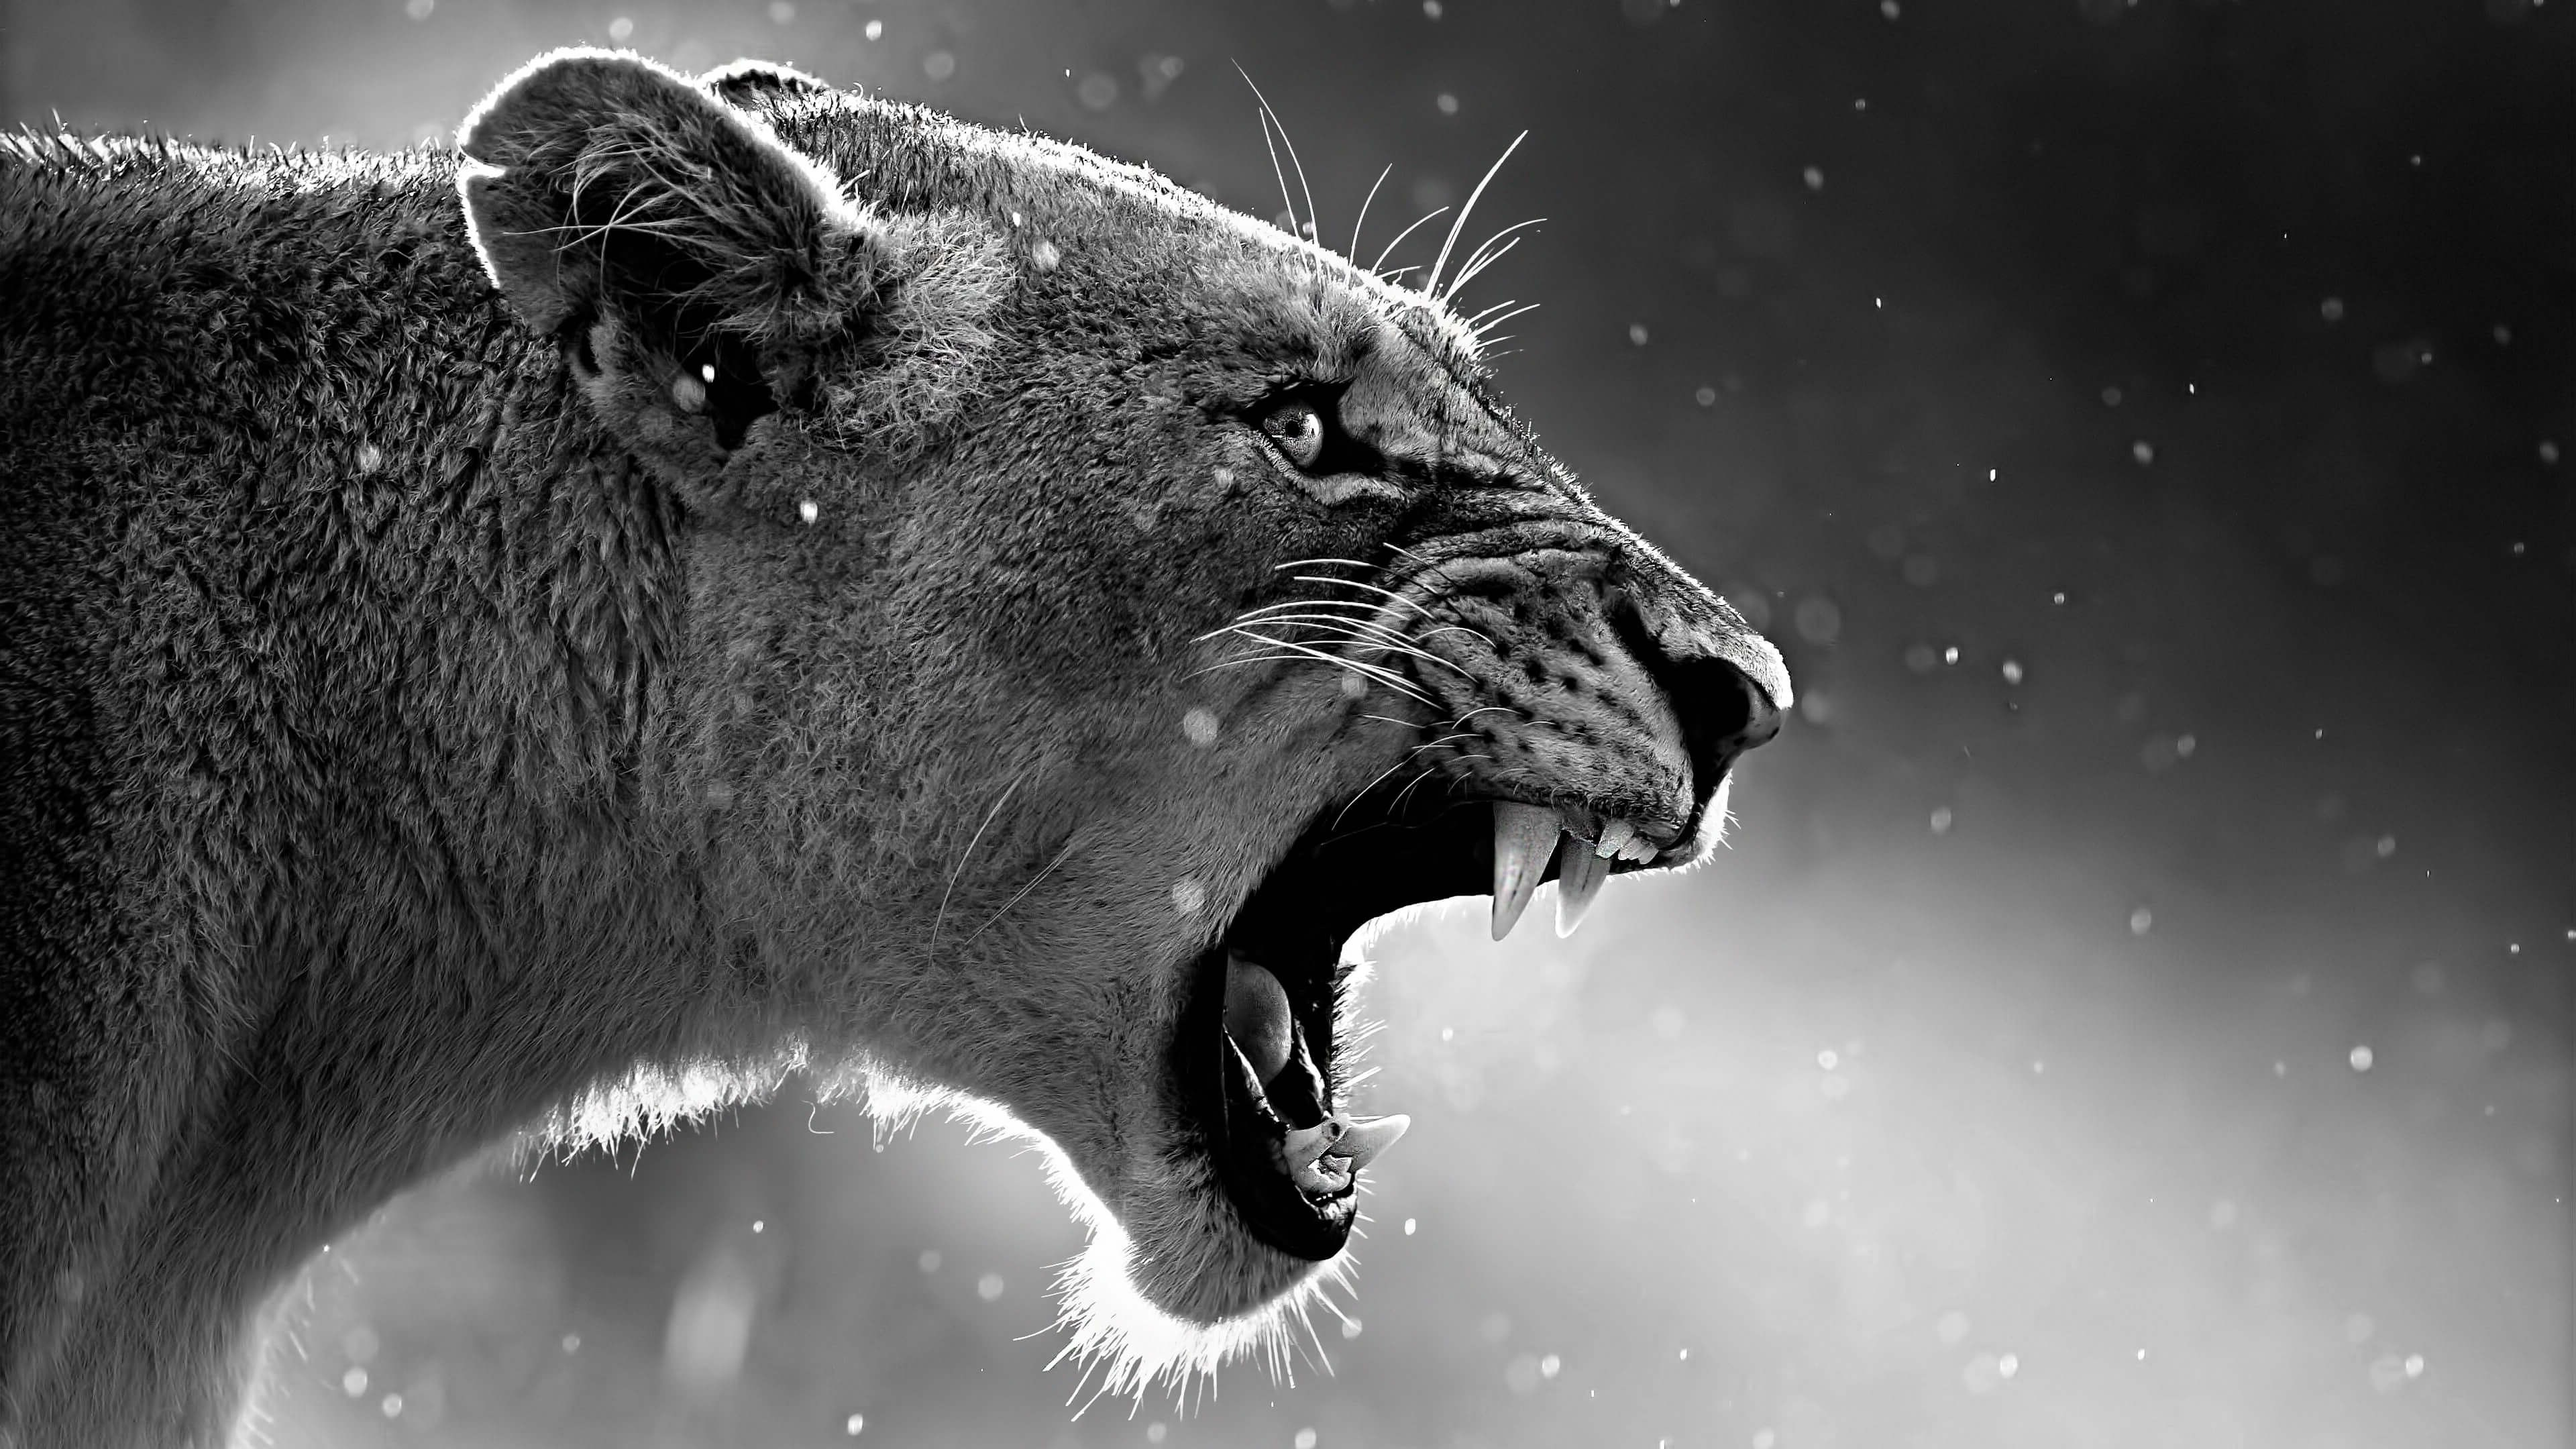 Lion Roaring HD Animals 4k Wallpapers Images Backgrounds